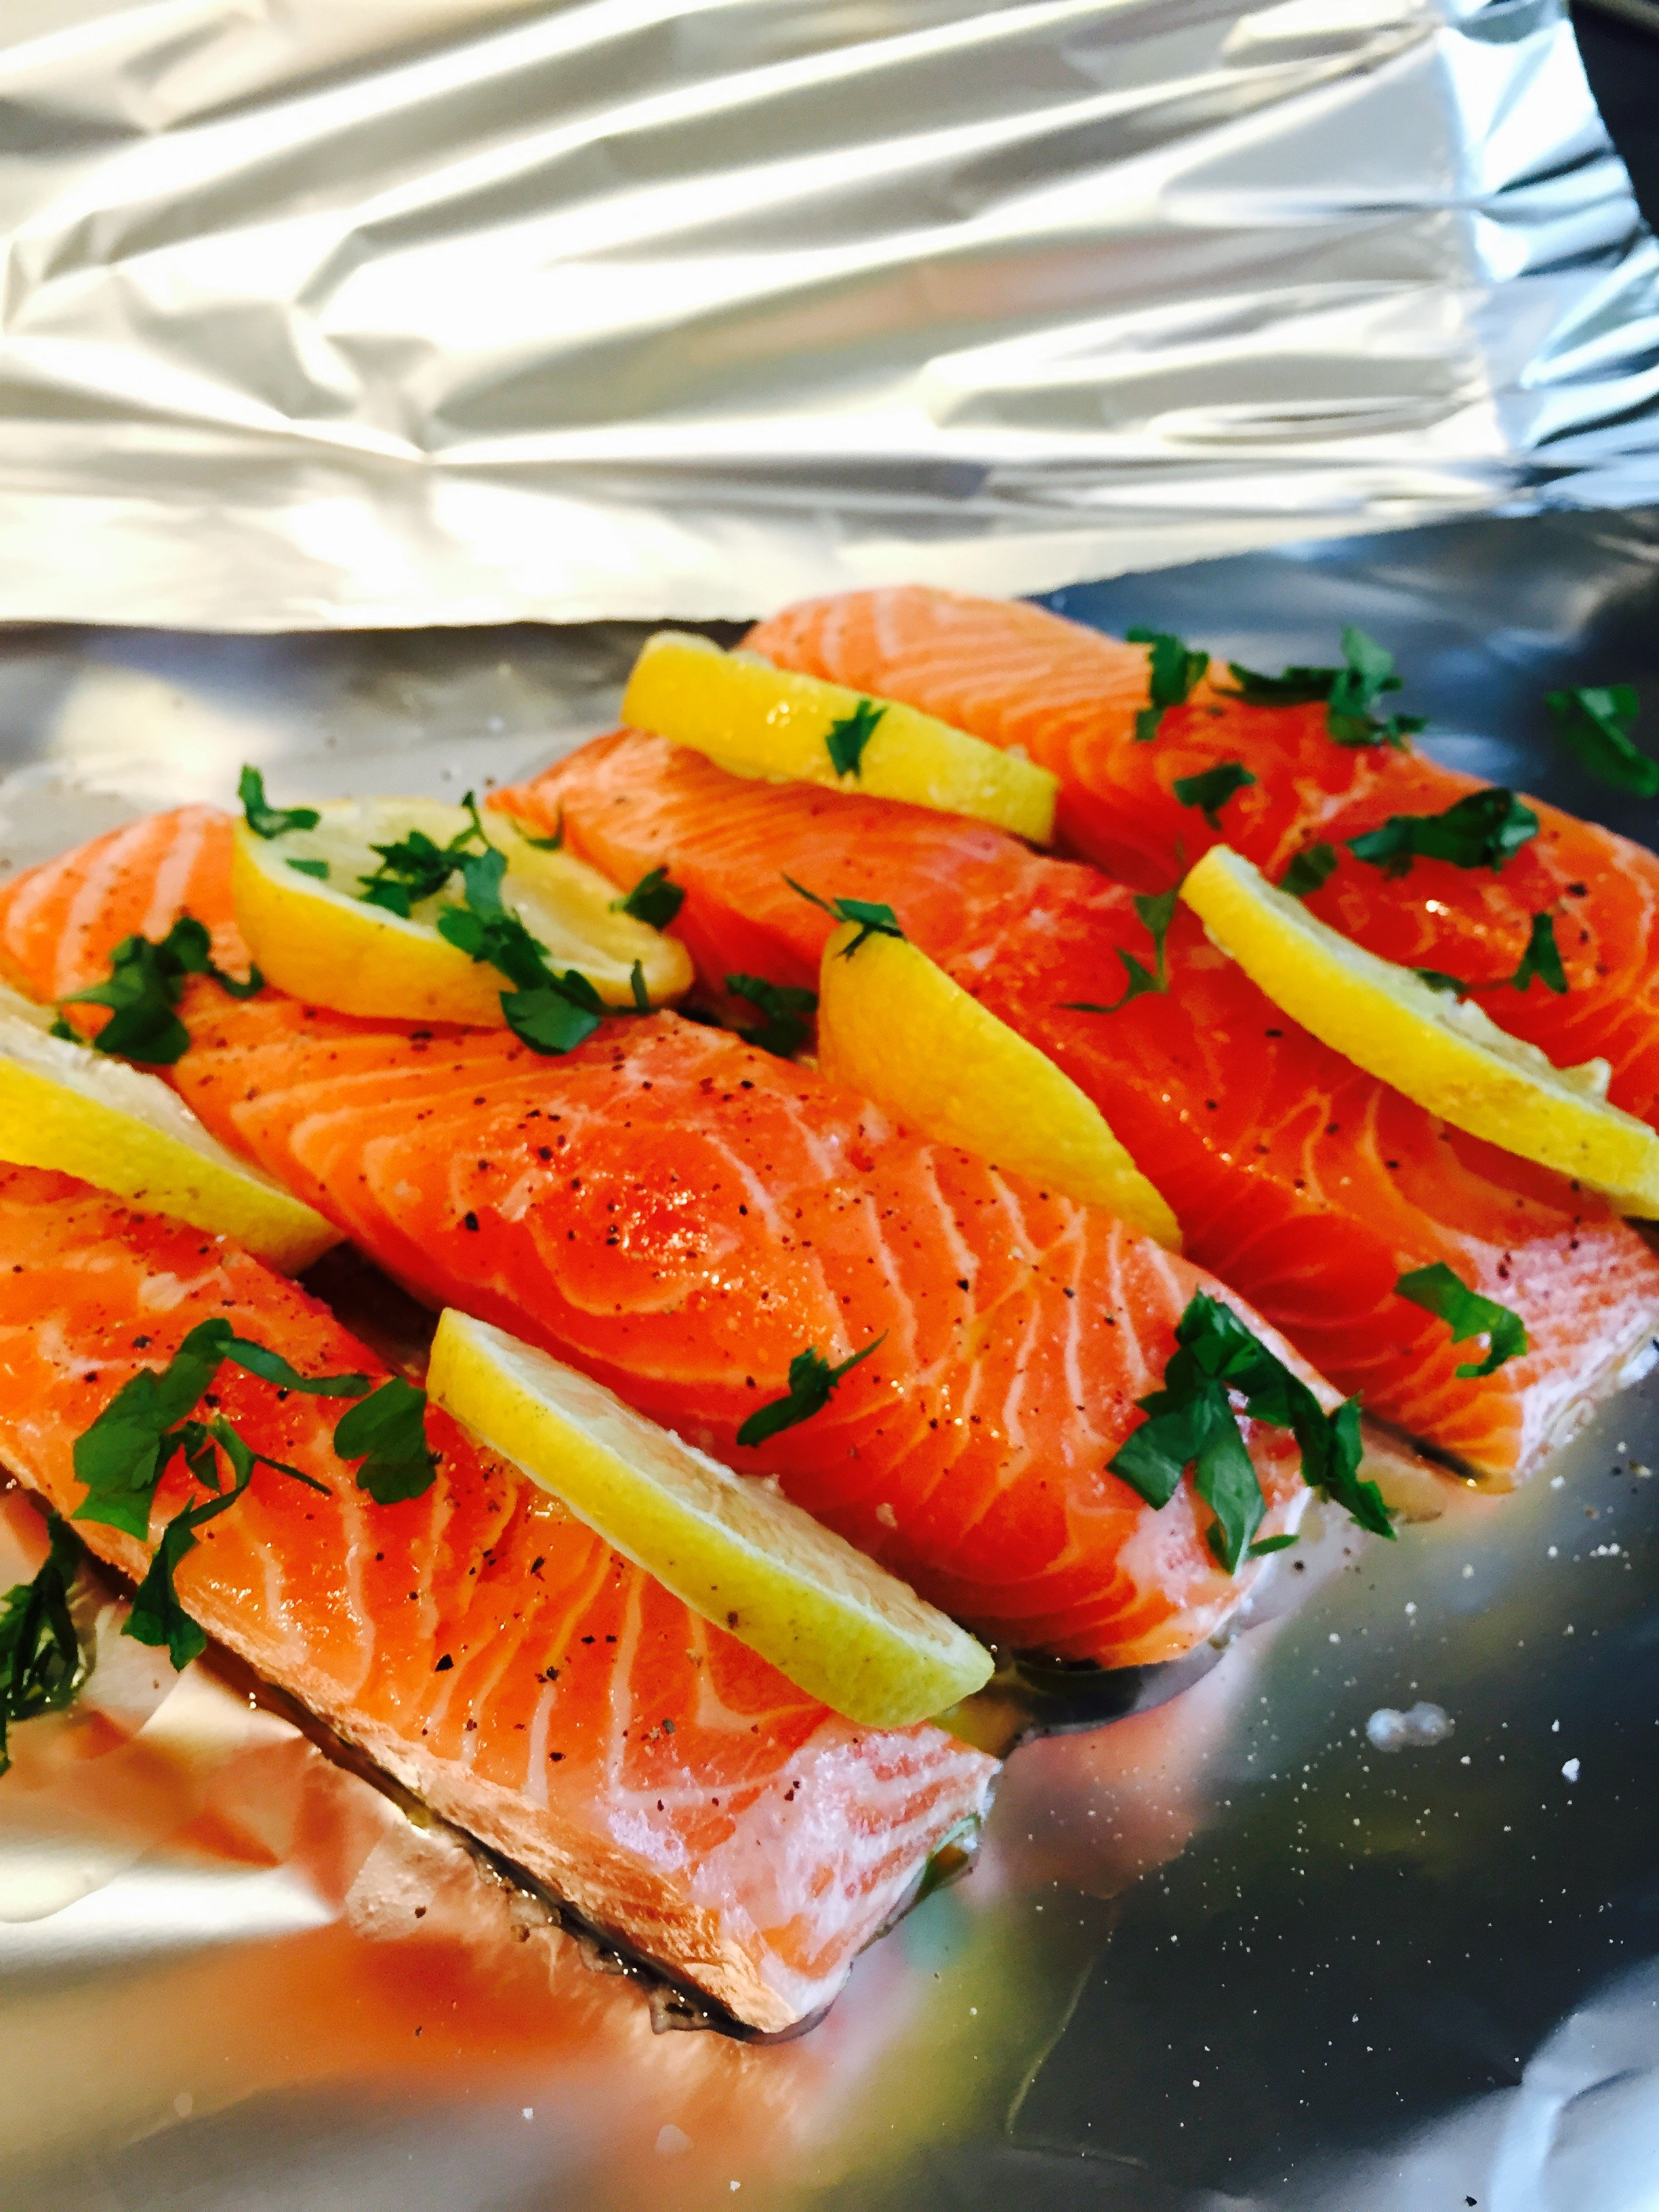 Salmon In Tin Foil Parcel, Salmon Parcel, How To Cook Salmon In The Oven